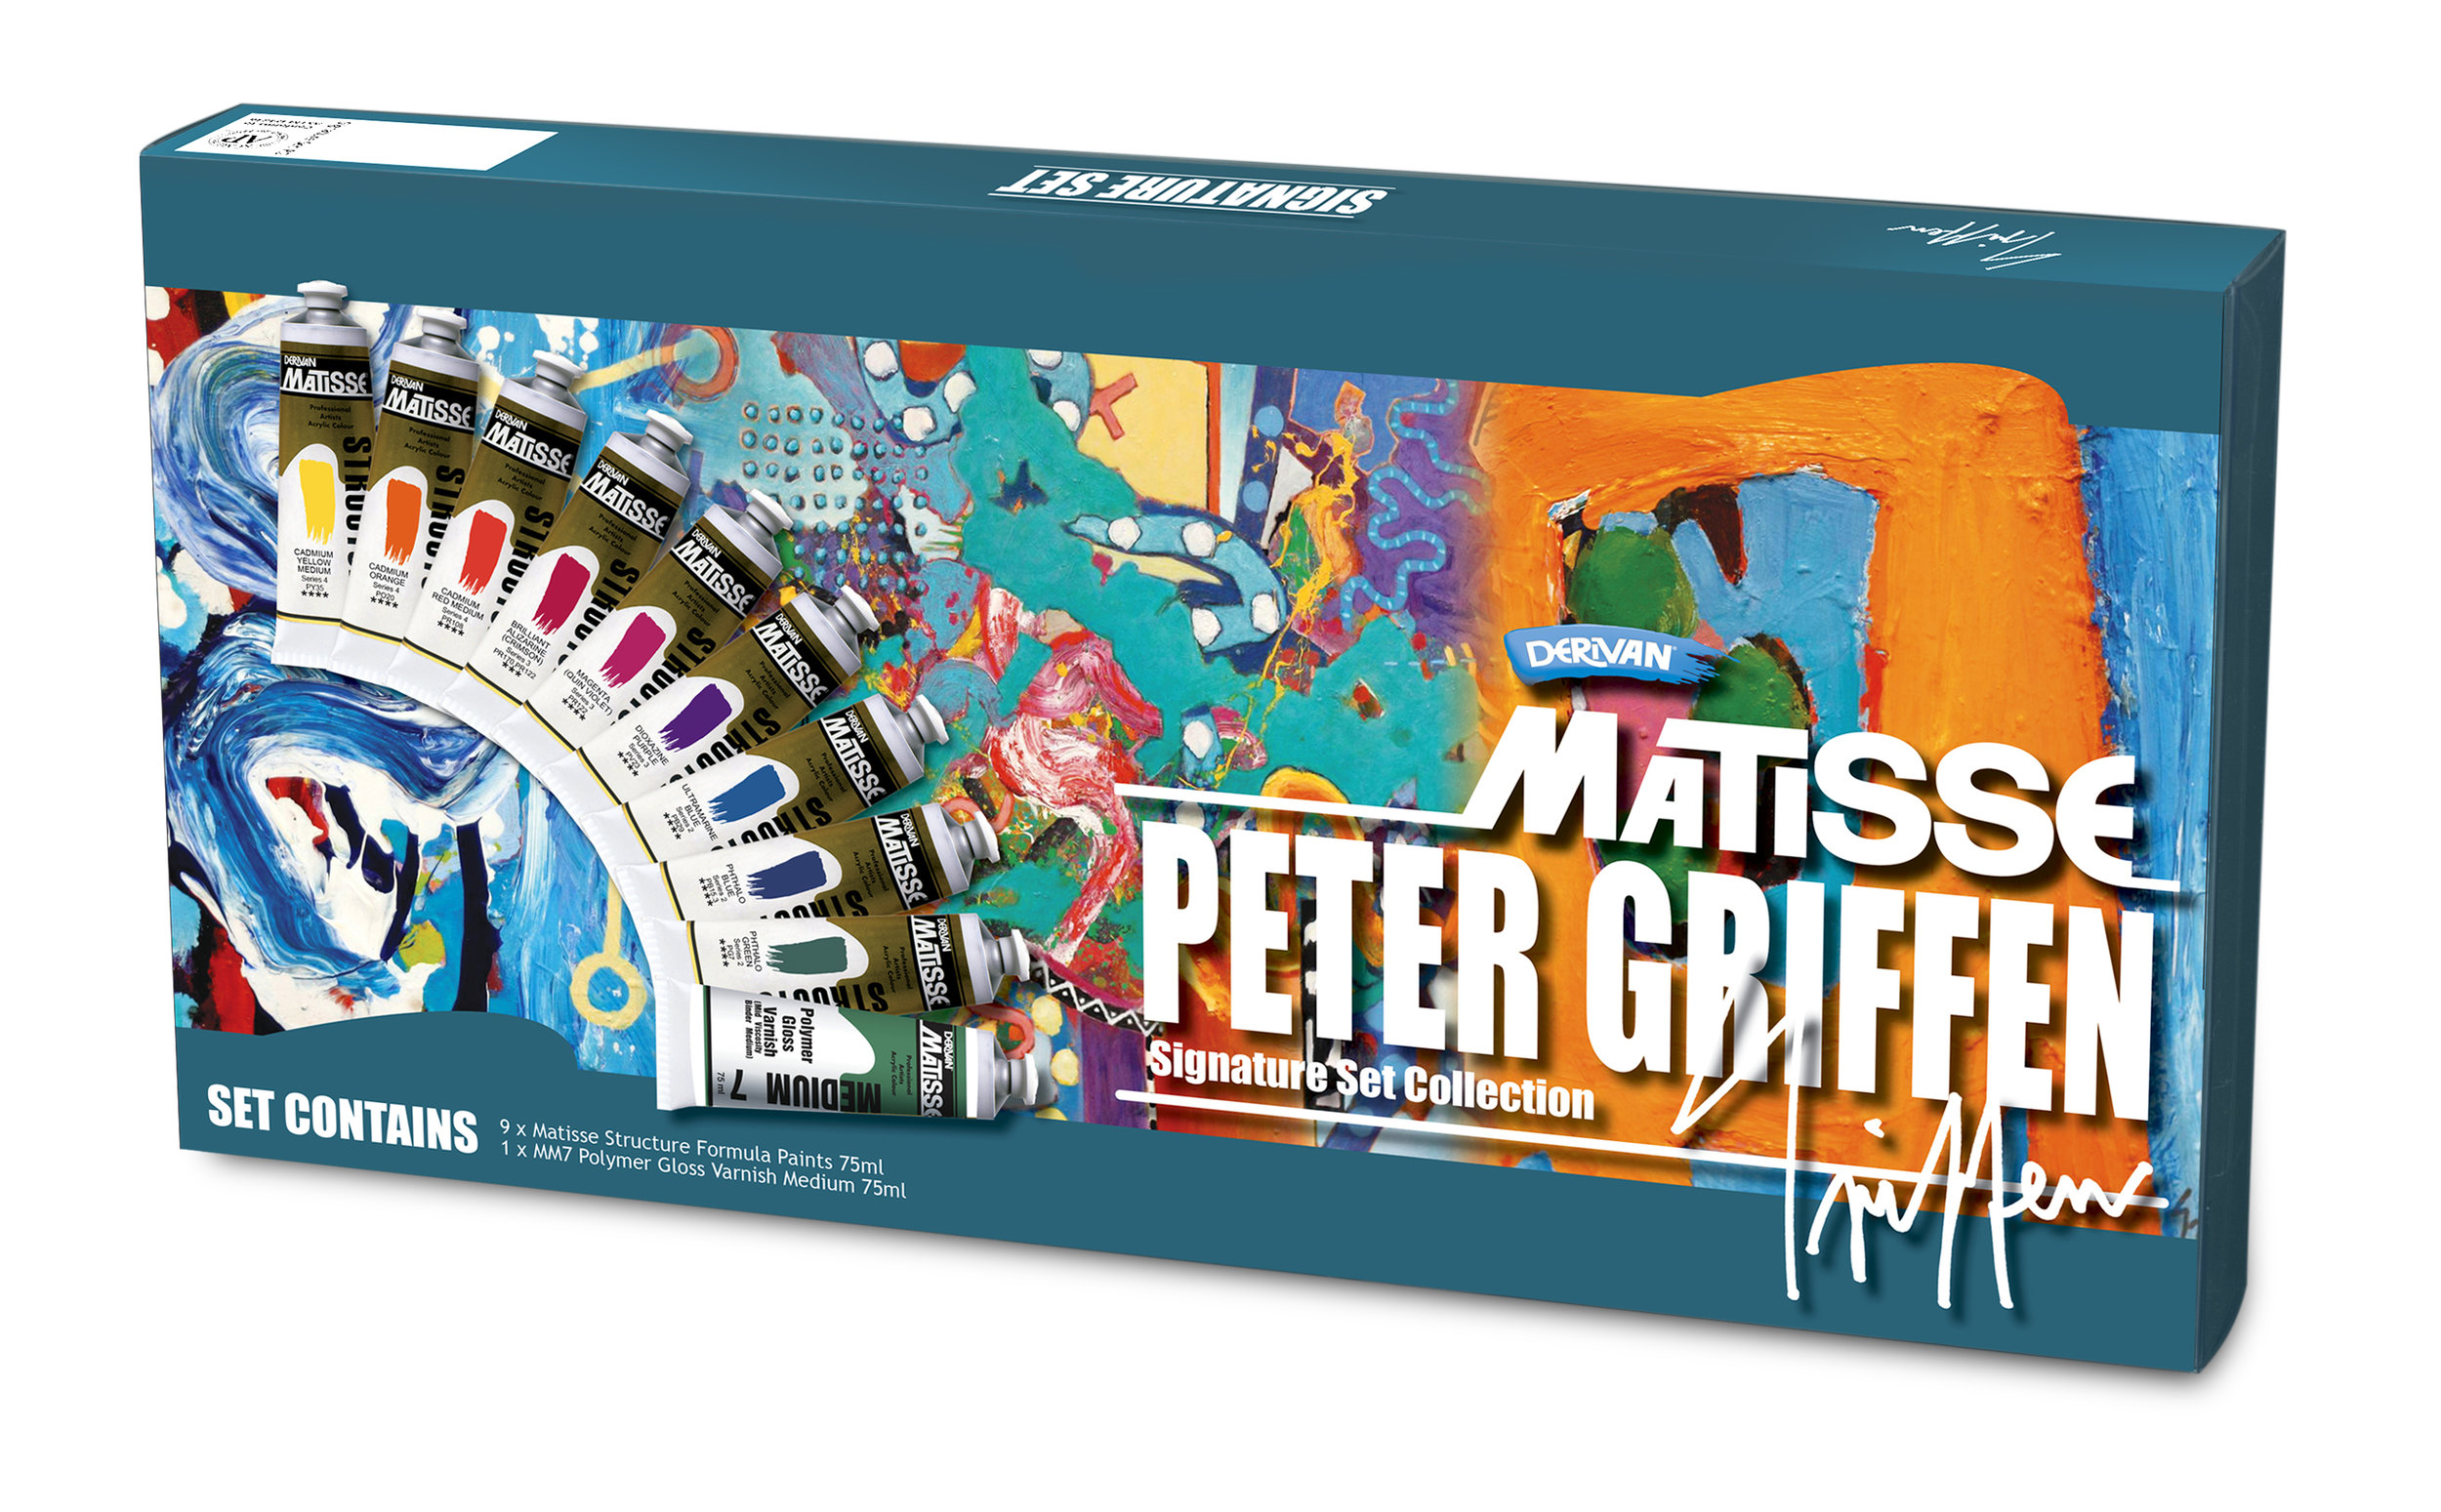 Peter Griffen - Signature Collection Set -